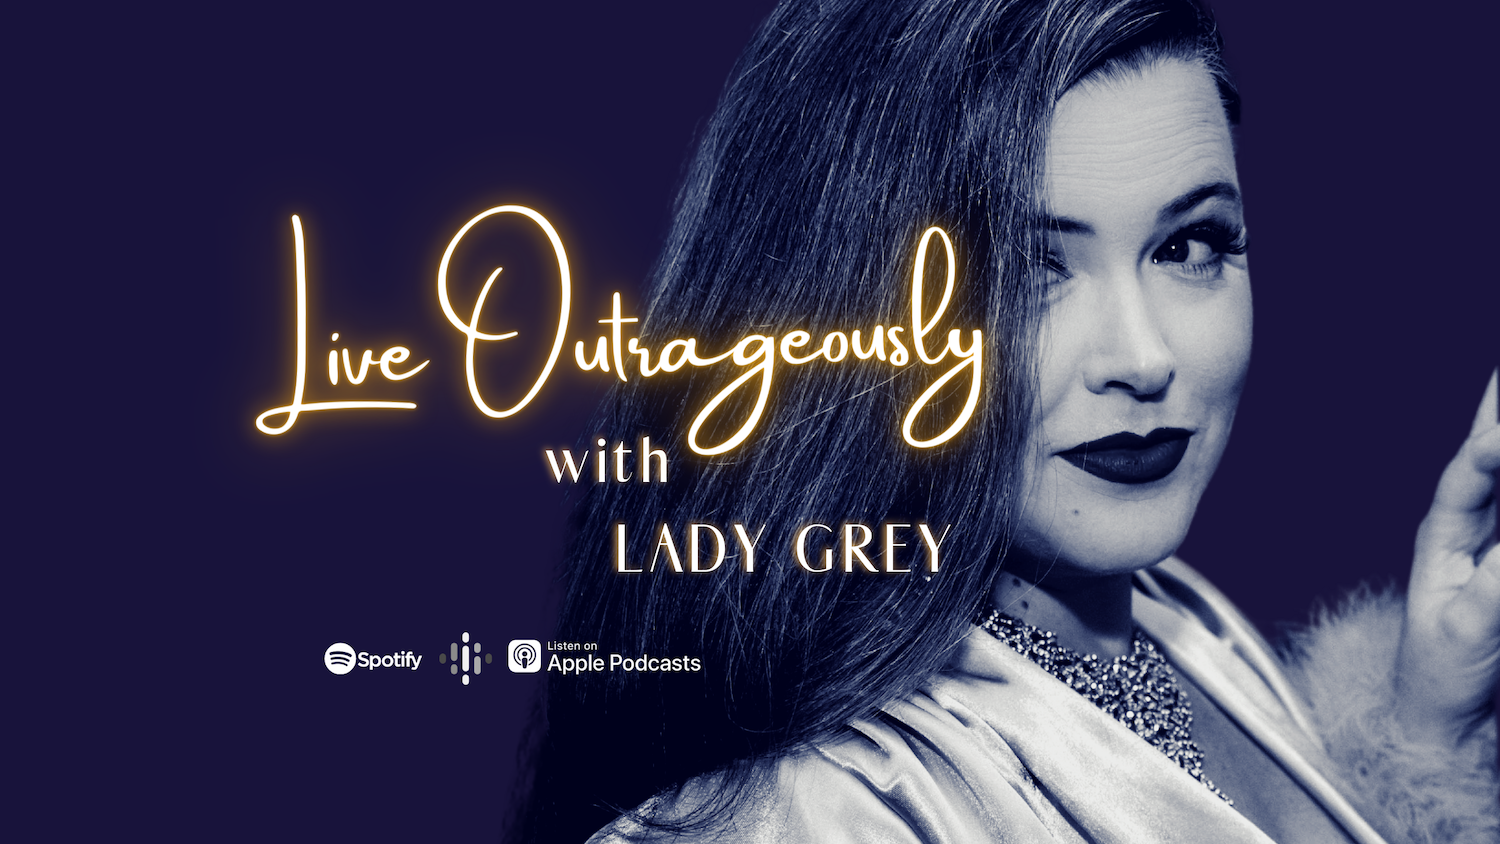 Live Outrageously with Lady Grey